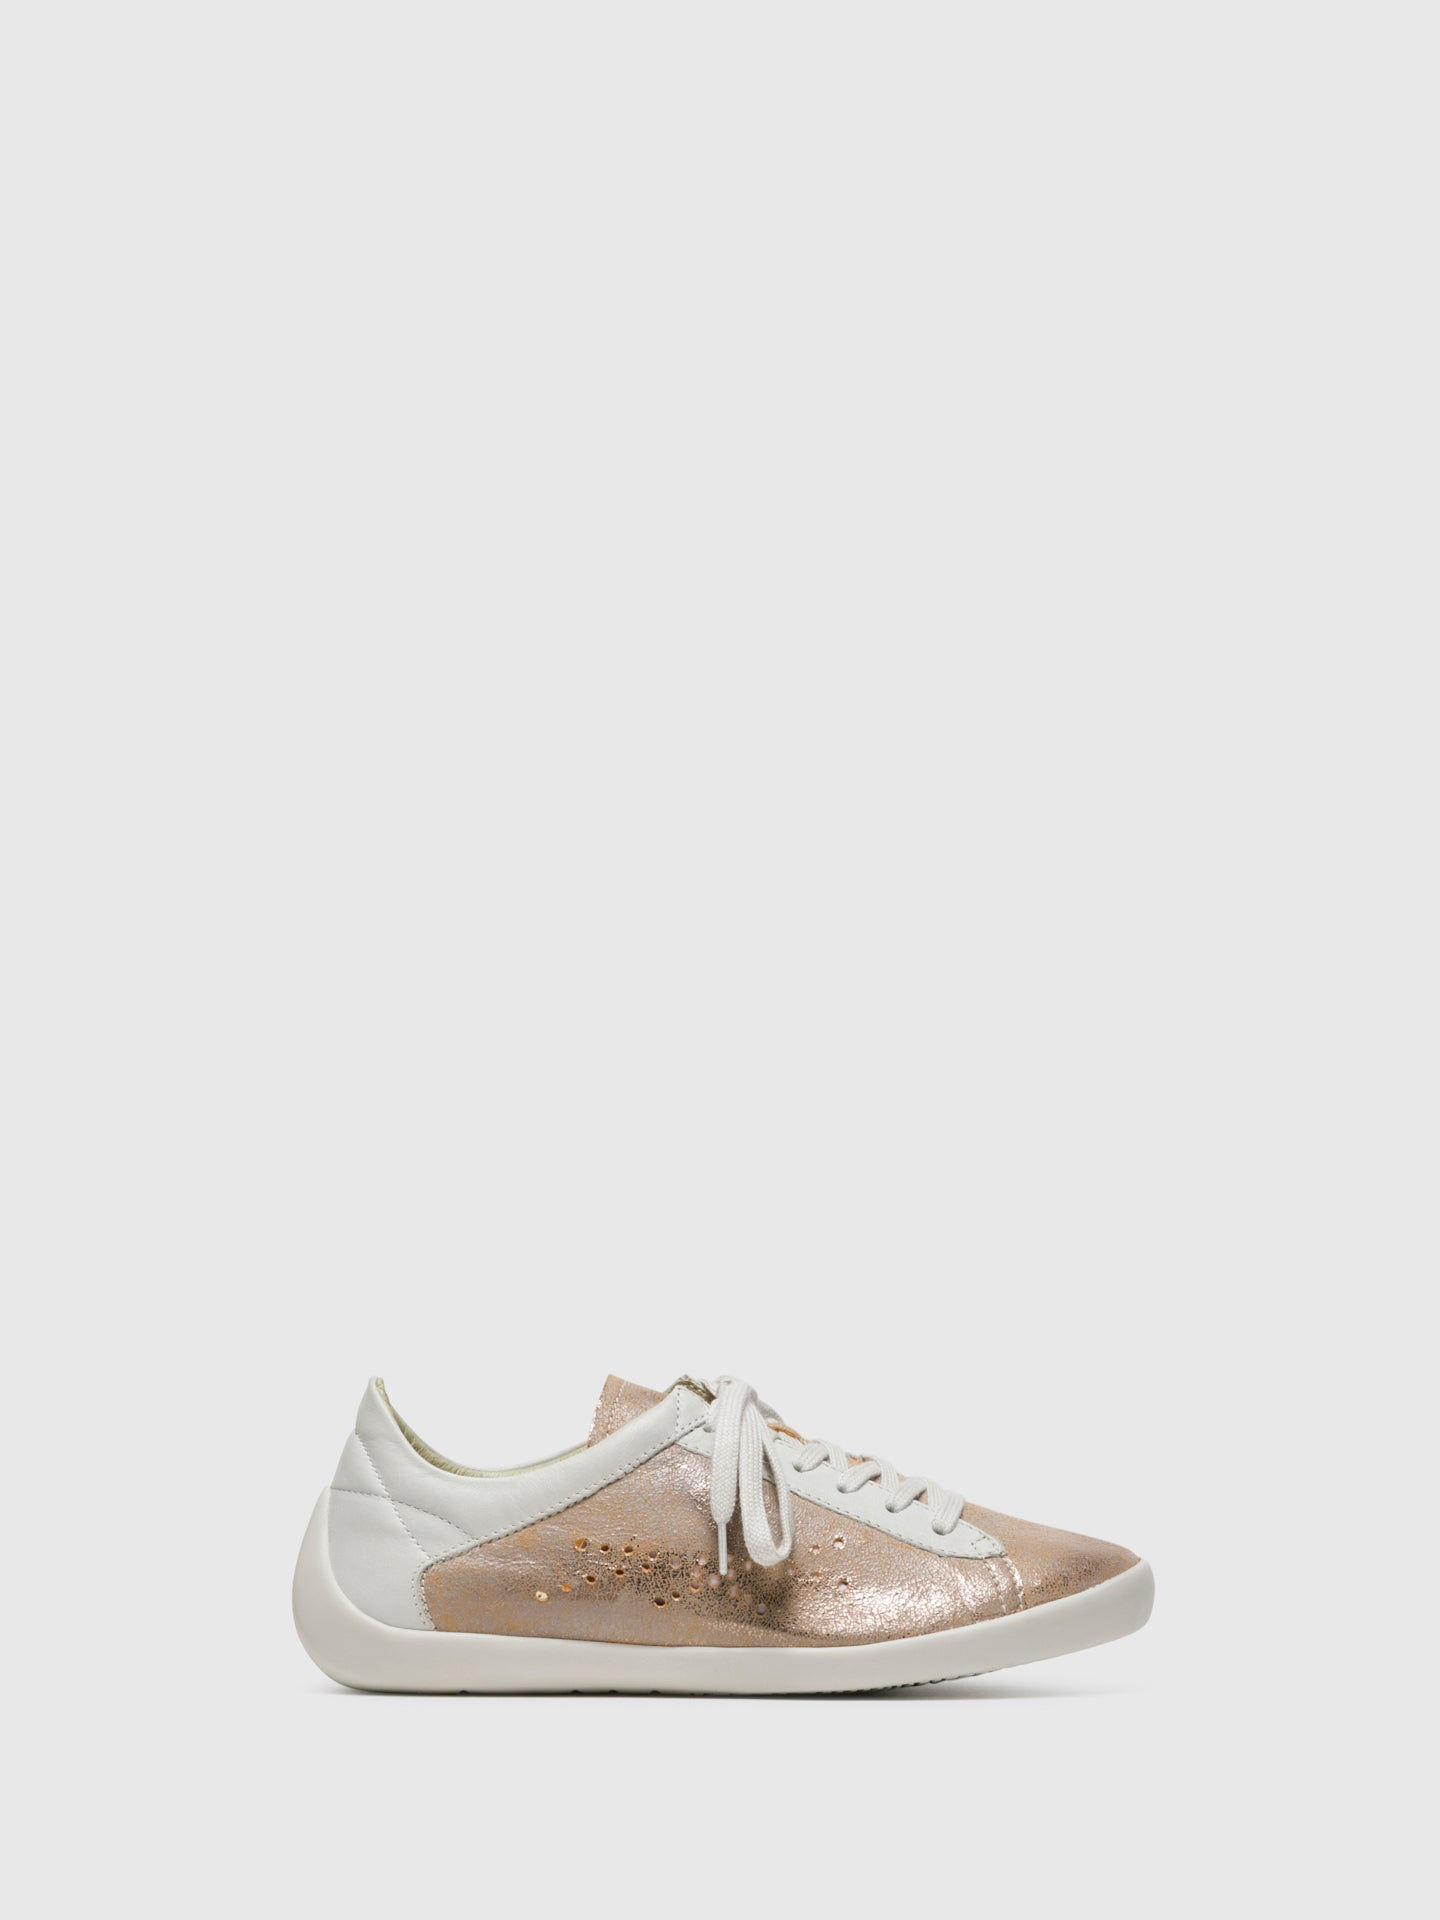 SOFTINOS SandyBrown Lace-up Sneakers